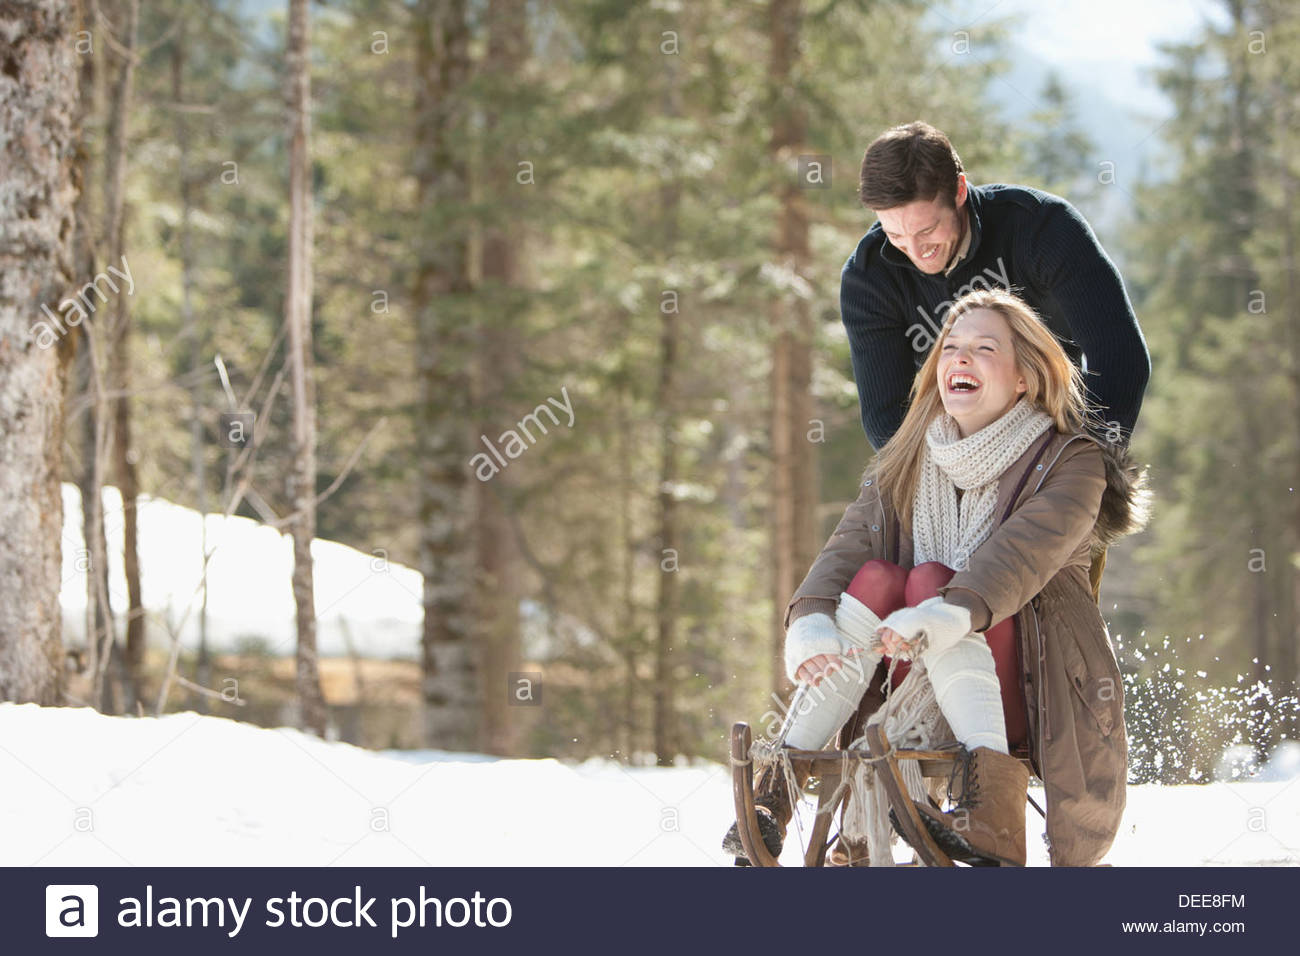 Man pushing woman on sled in snowy woods - Stock Image